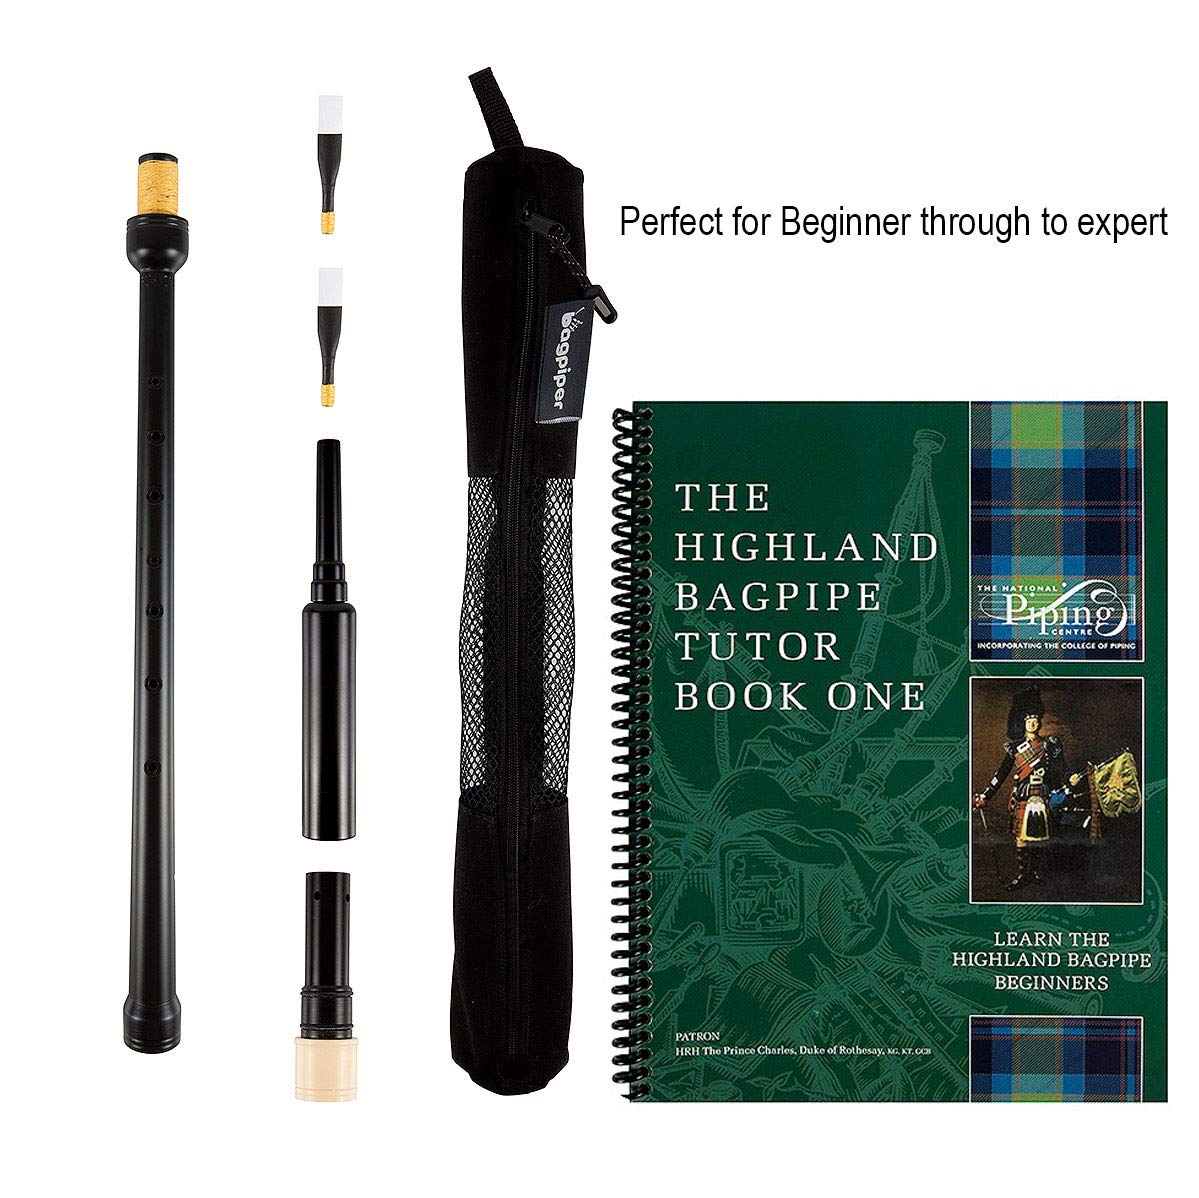 Trutone Long Highland Bagpipe Practice Chanter, The Piping Center of Scotland Tutor Book, Qty 2 Reeds in a Breathable Case, Suitable from Beginner to Expert